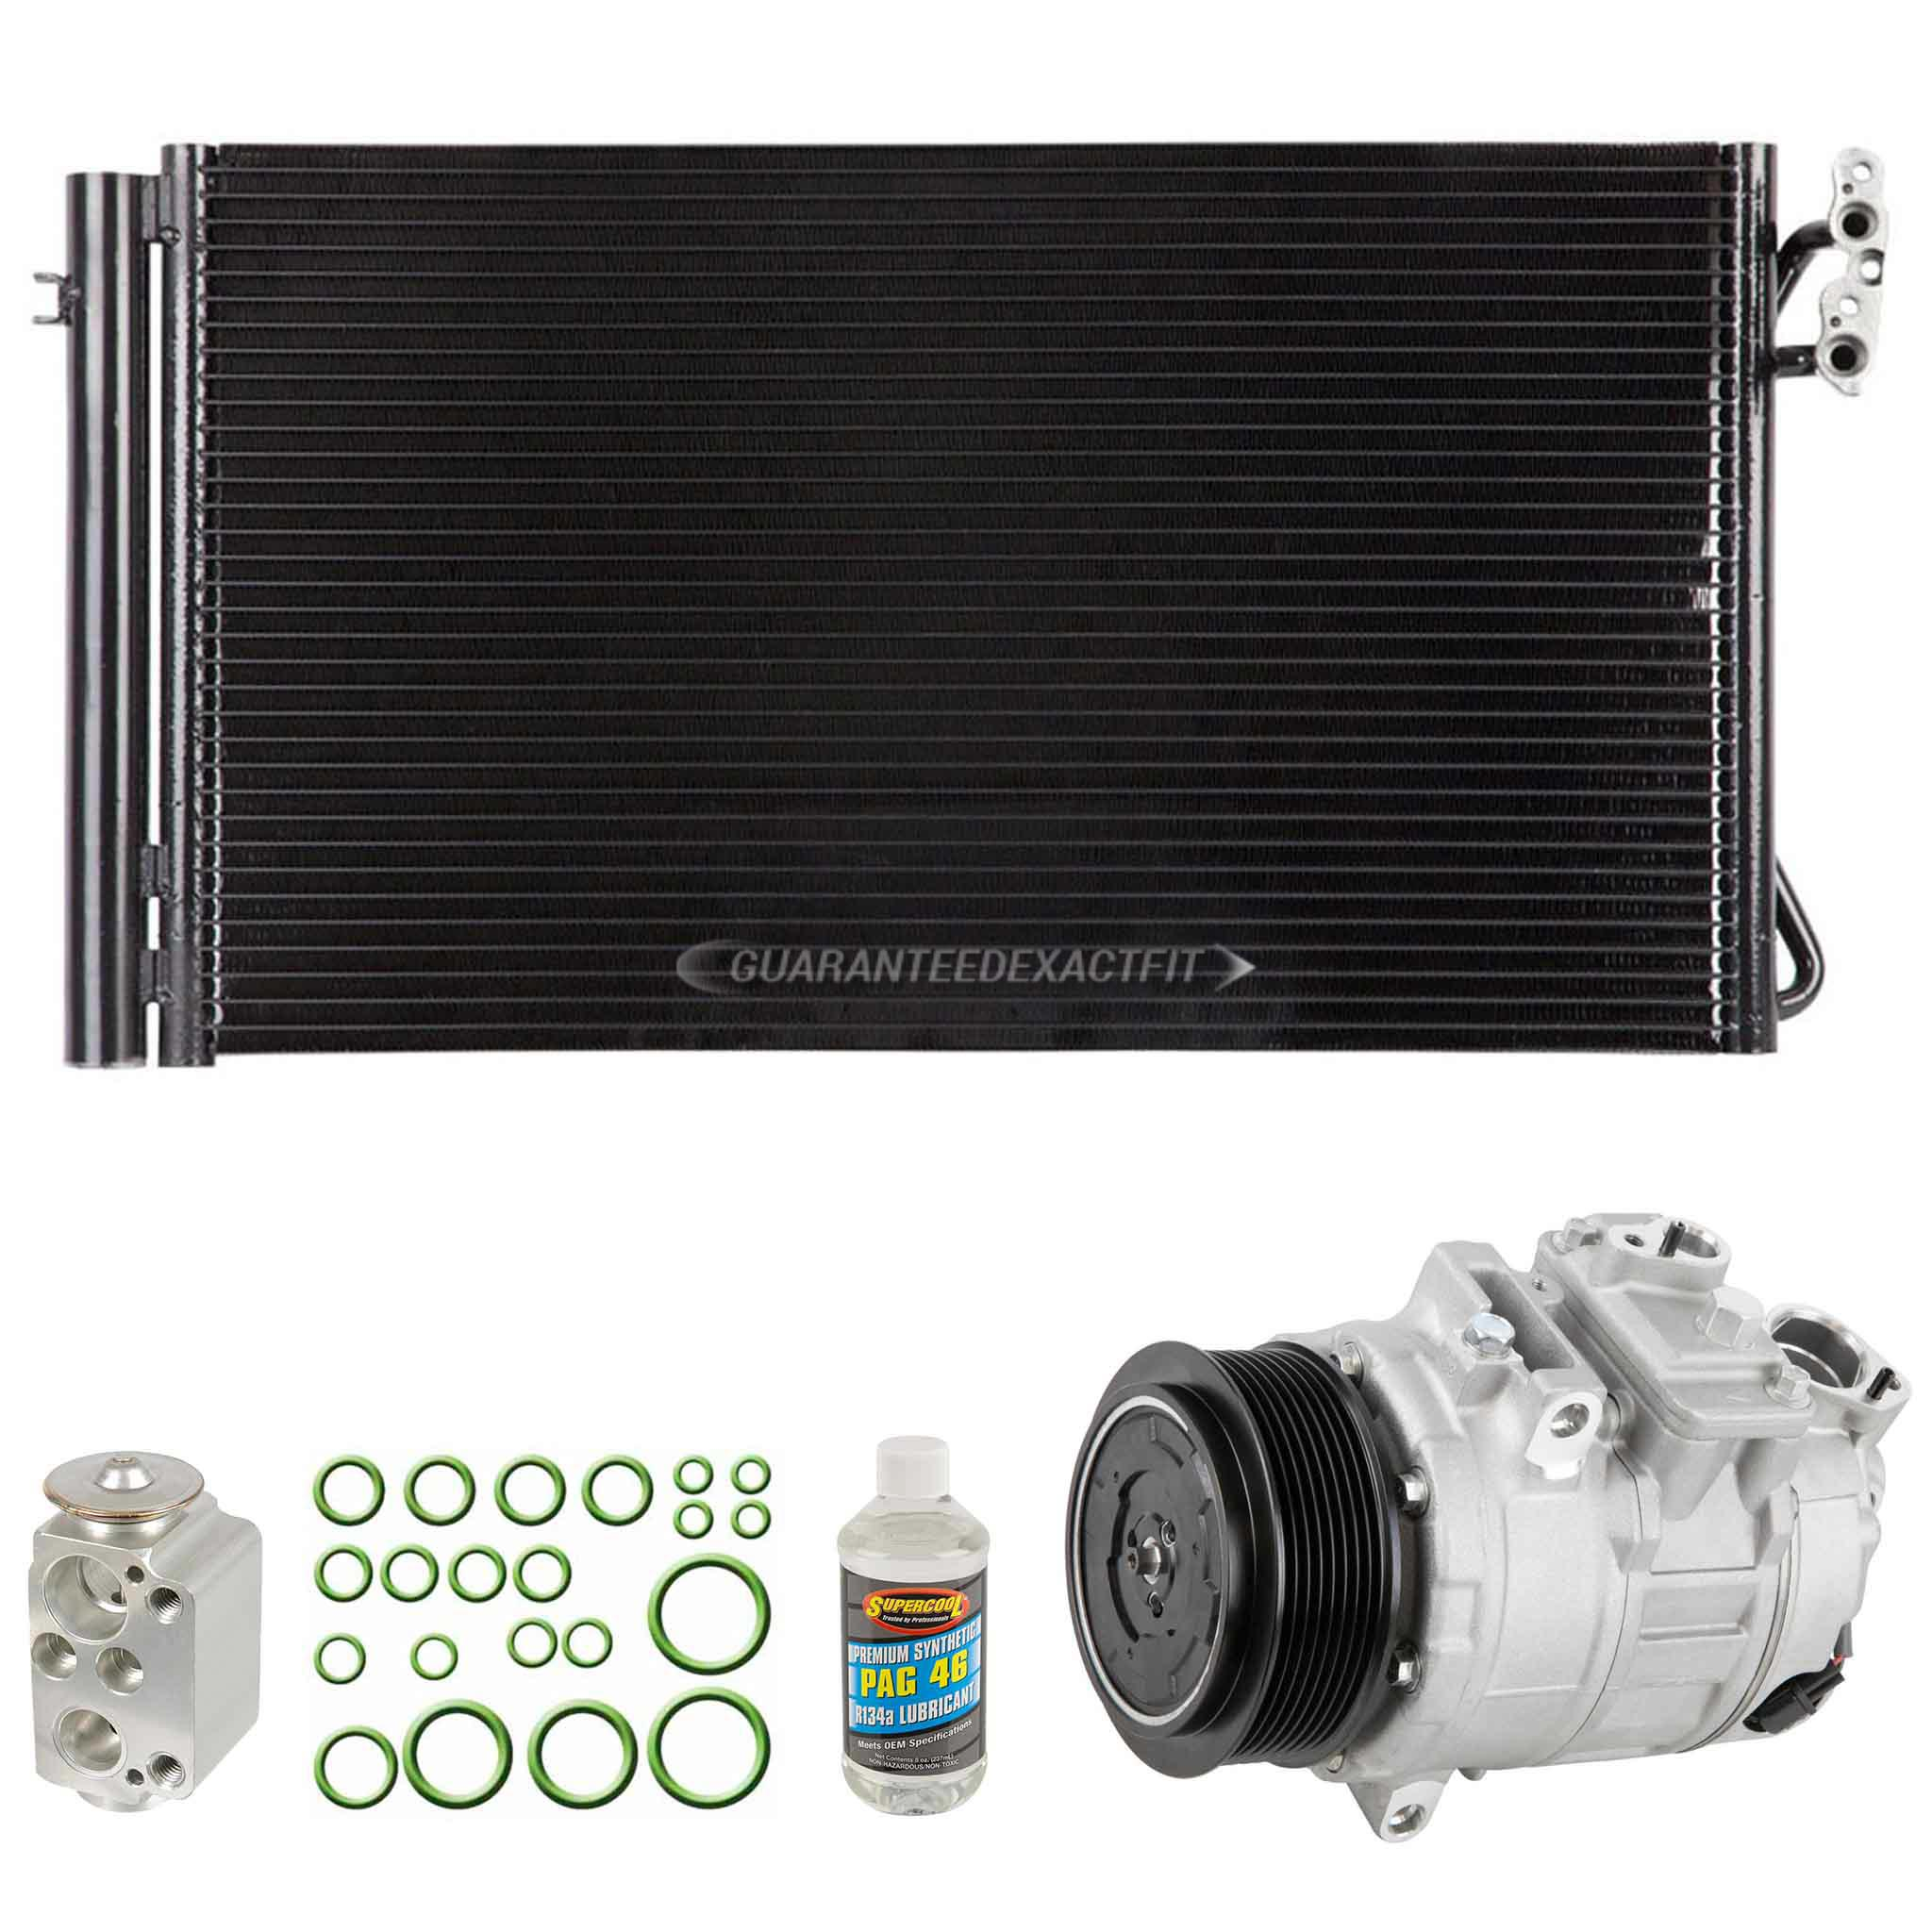 BuyAutoParts 61-94182R6 A/C Compressor and Components Kit